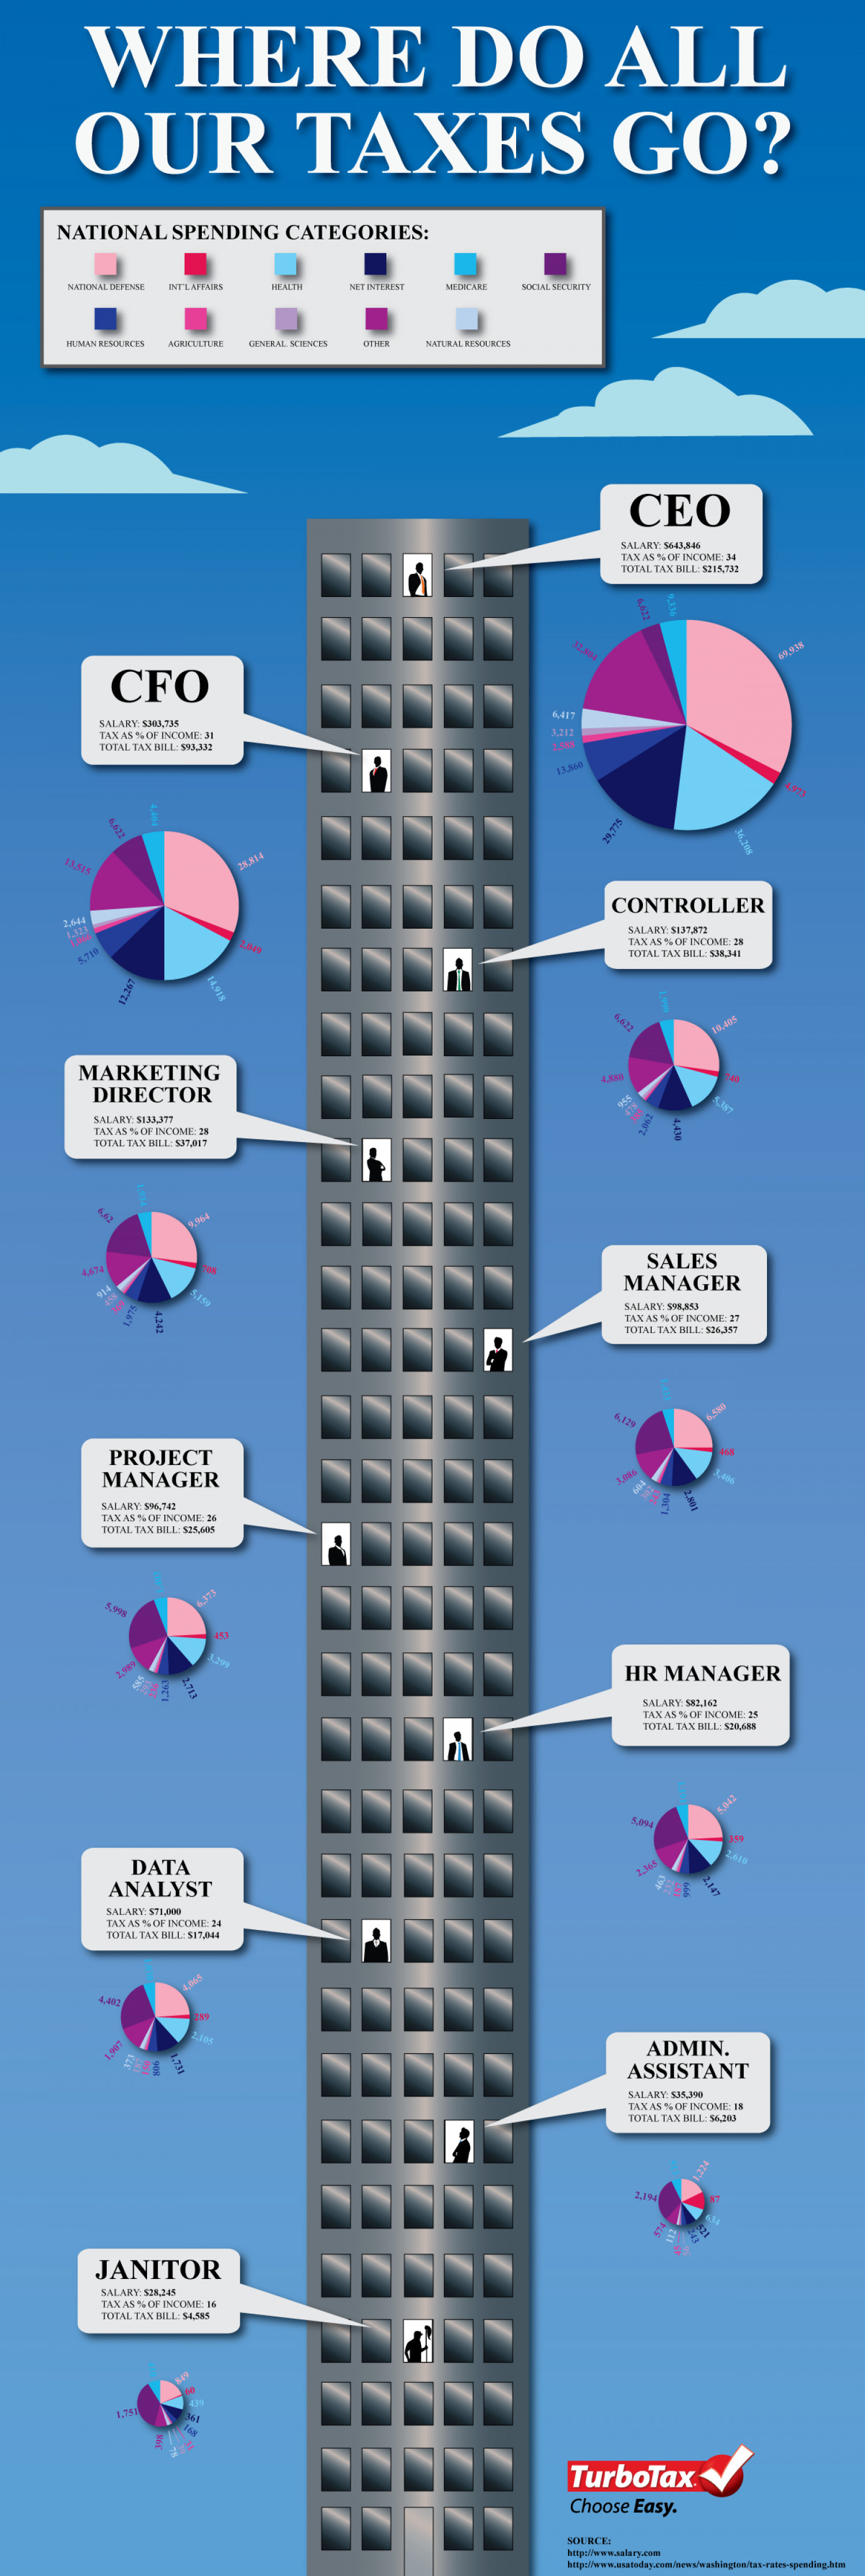 Where Do All Our Taxes Go? Infographic